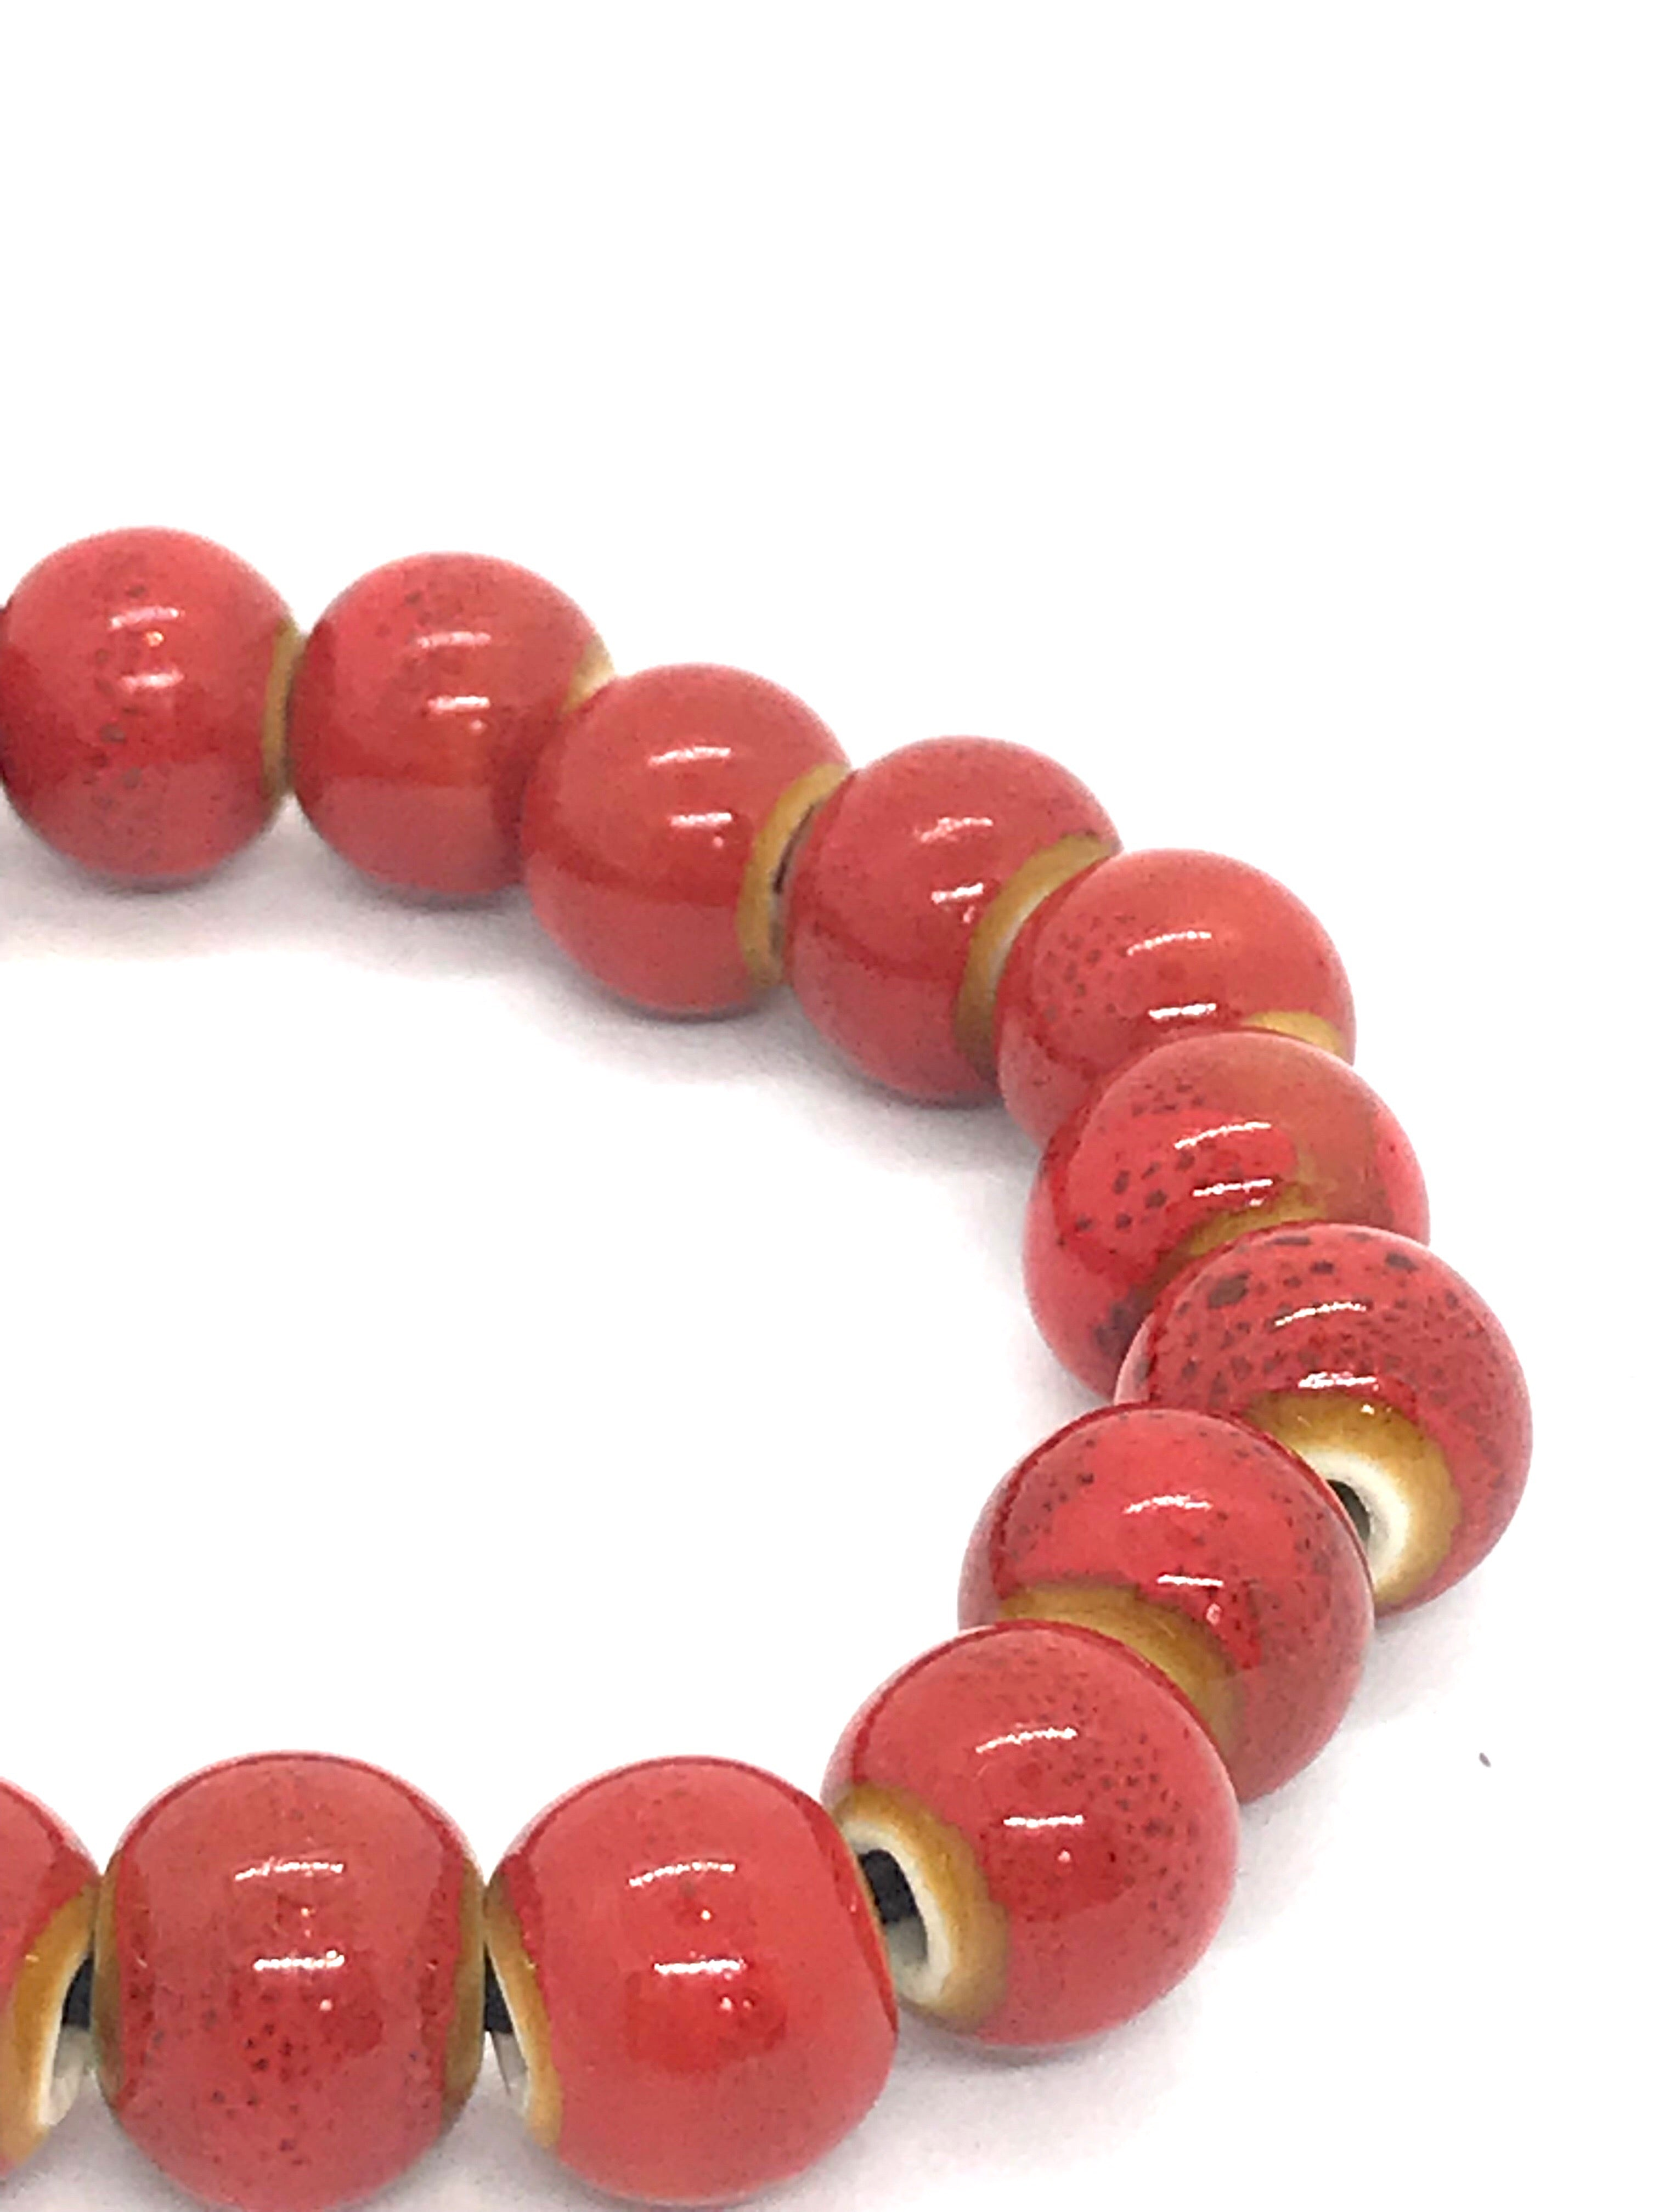 JIANHUI EGG SHAPE CERAMIC BRACELET BL1914 RED